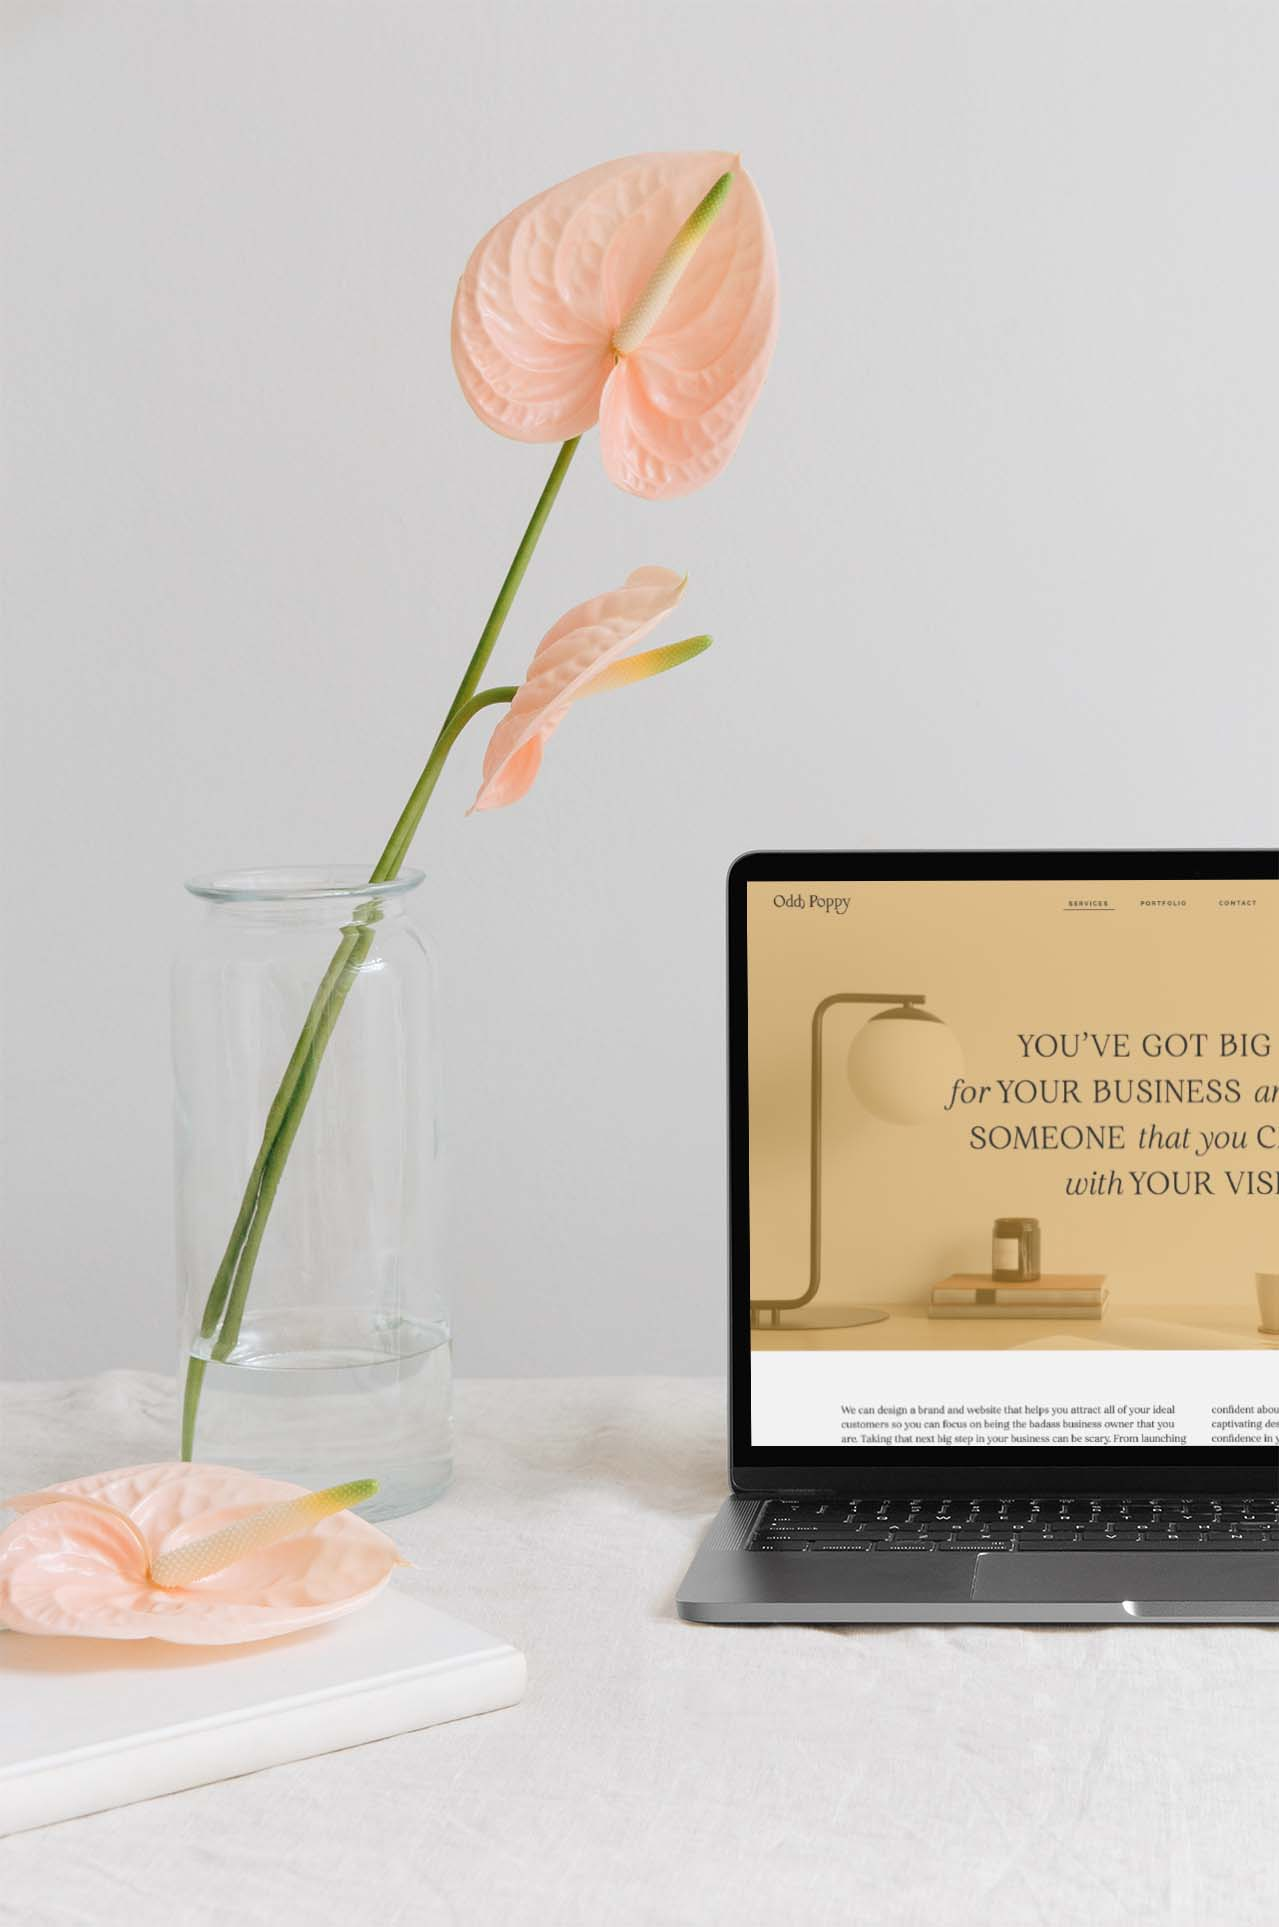 Website design by Odd Poppy Brand Co. on a slat gray Macbook Pro on a white table cloth next to a vase with a pink flower.